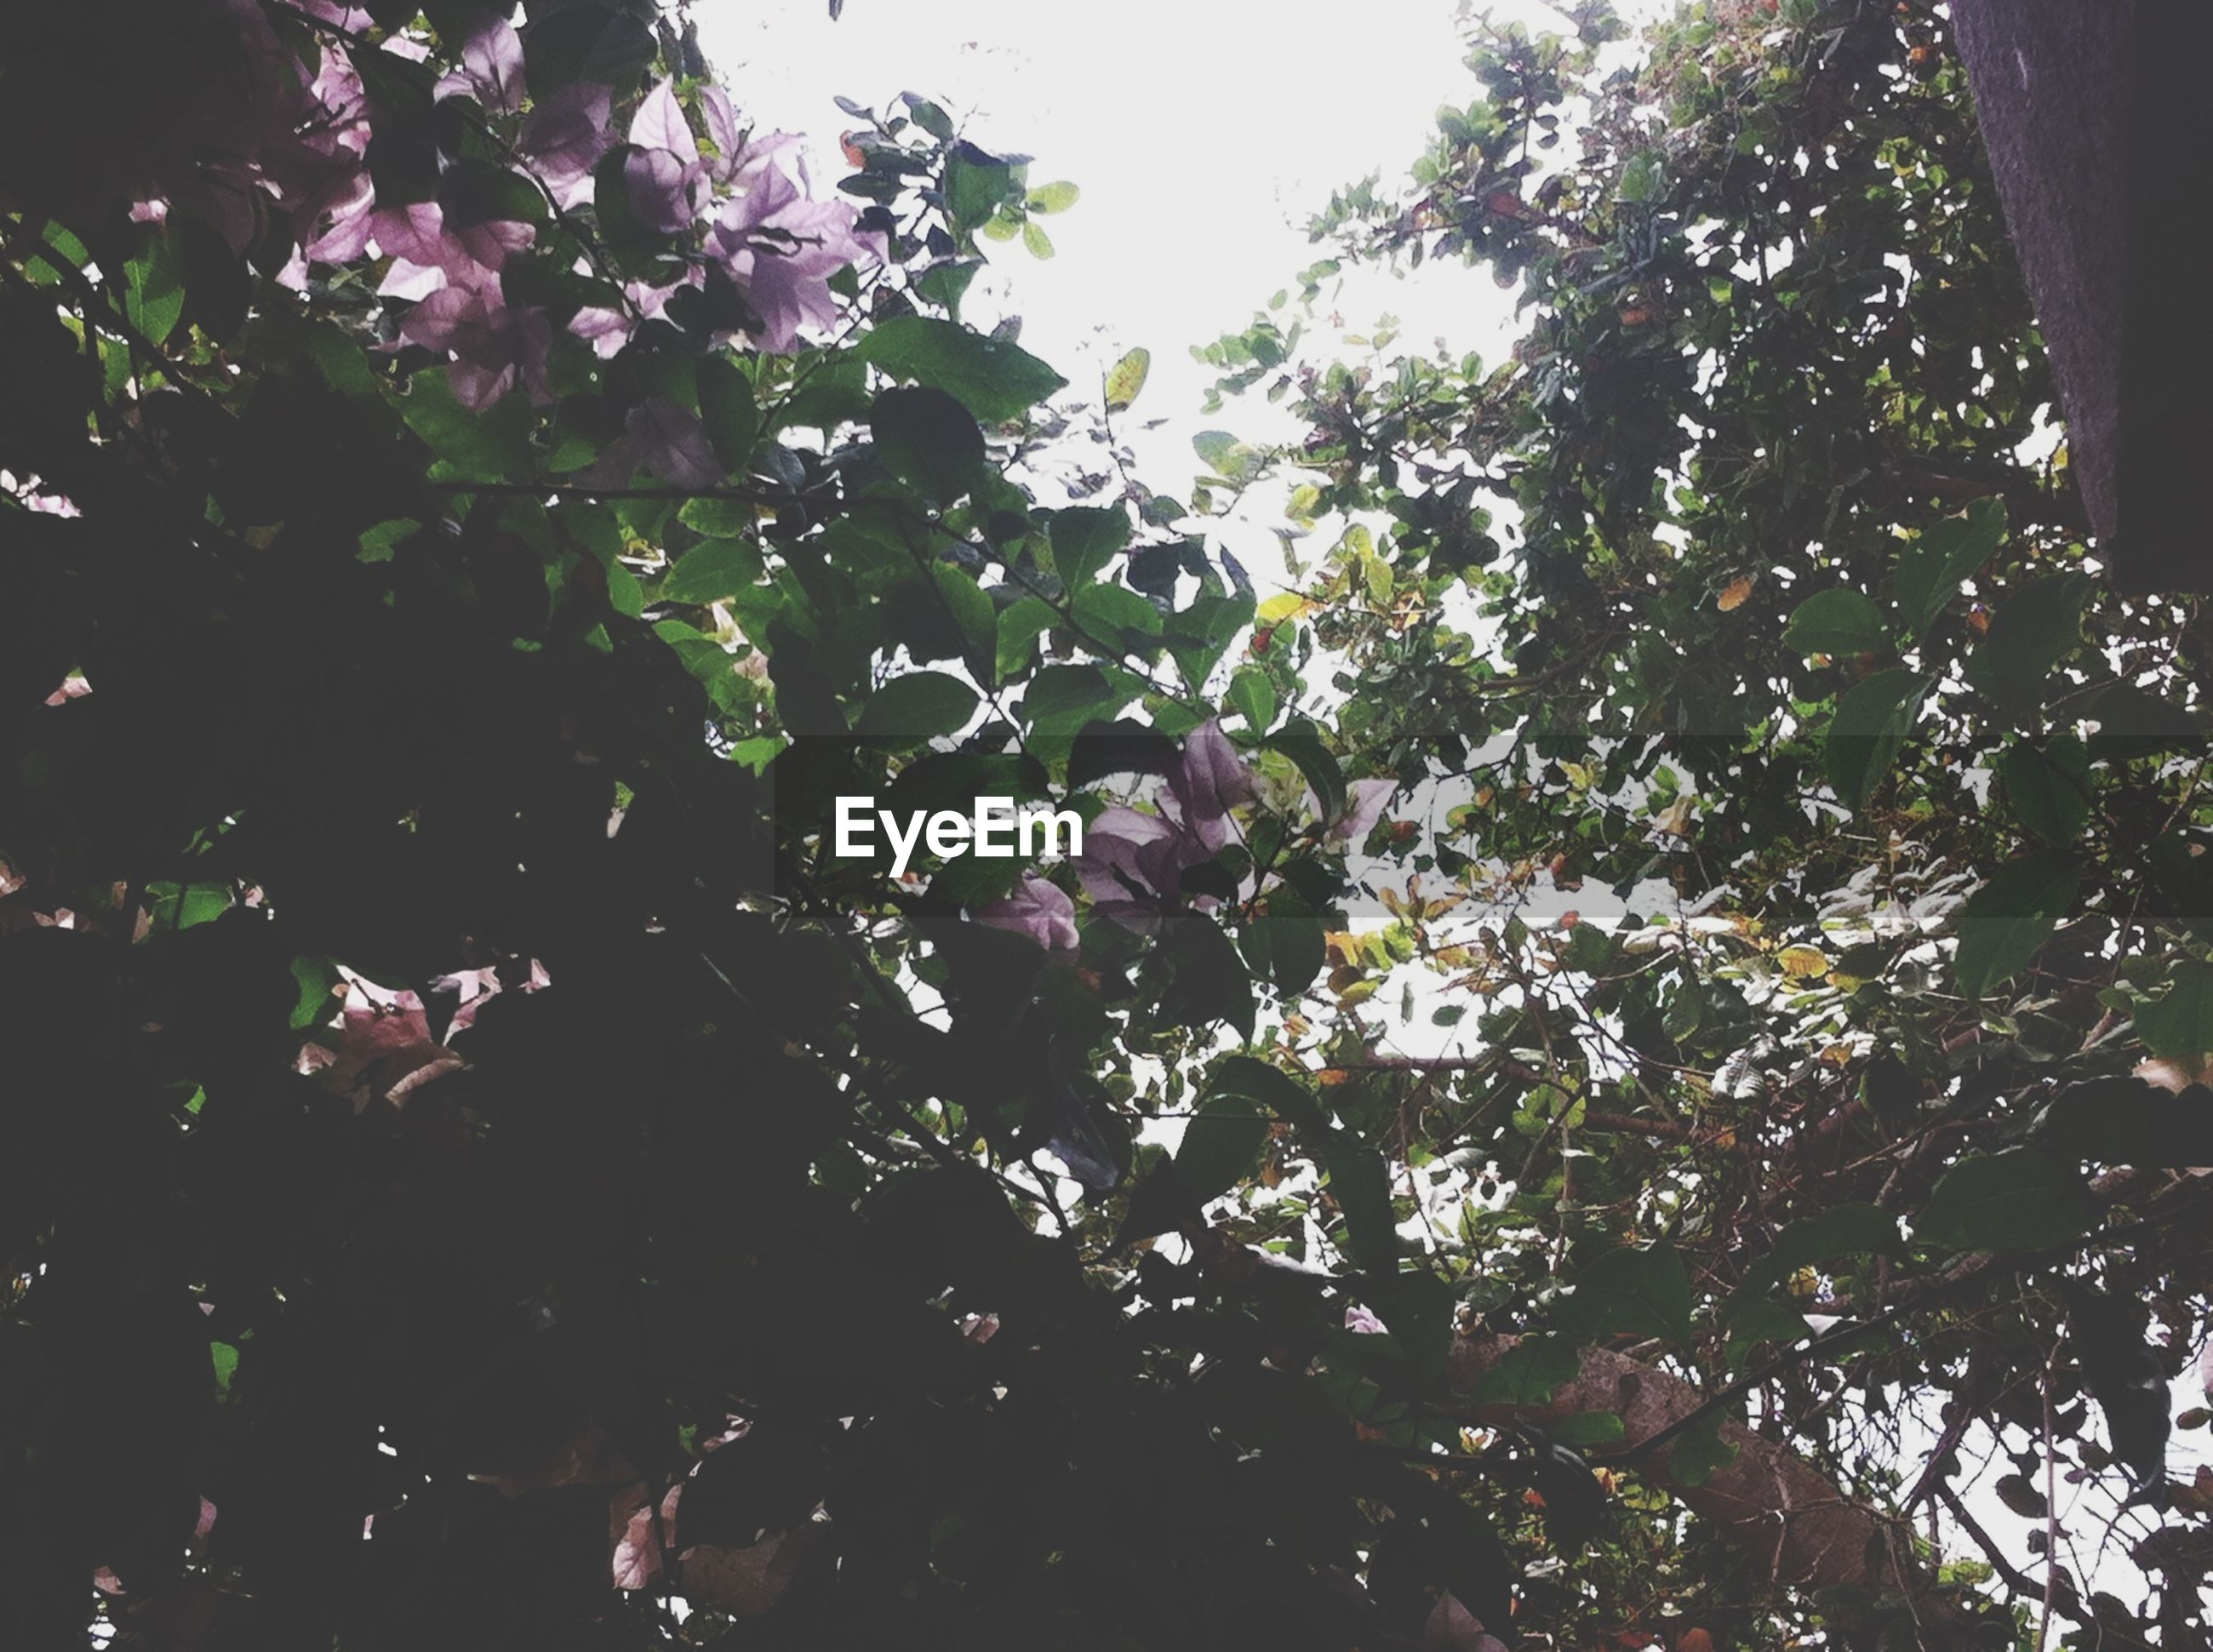 tree, growth, low angle view, branch, nature, beauty in nature, leaf, flower, outdoors, day, clear sky, no people, sunlight, freshness, pink color, sky, plant, tranquility, fragility, park - man made space